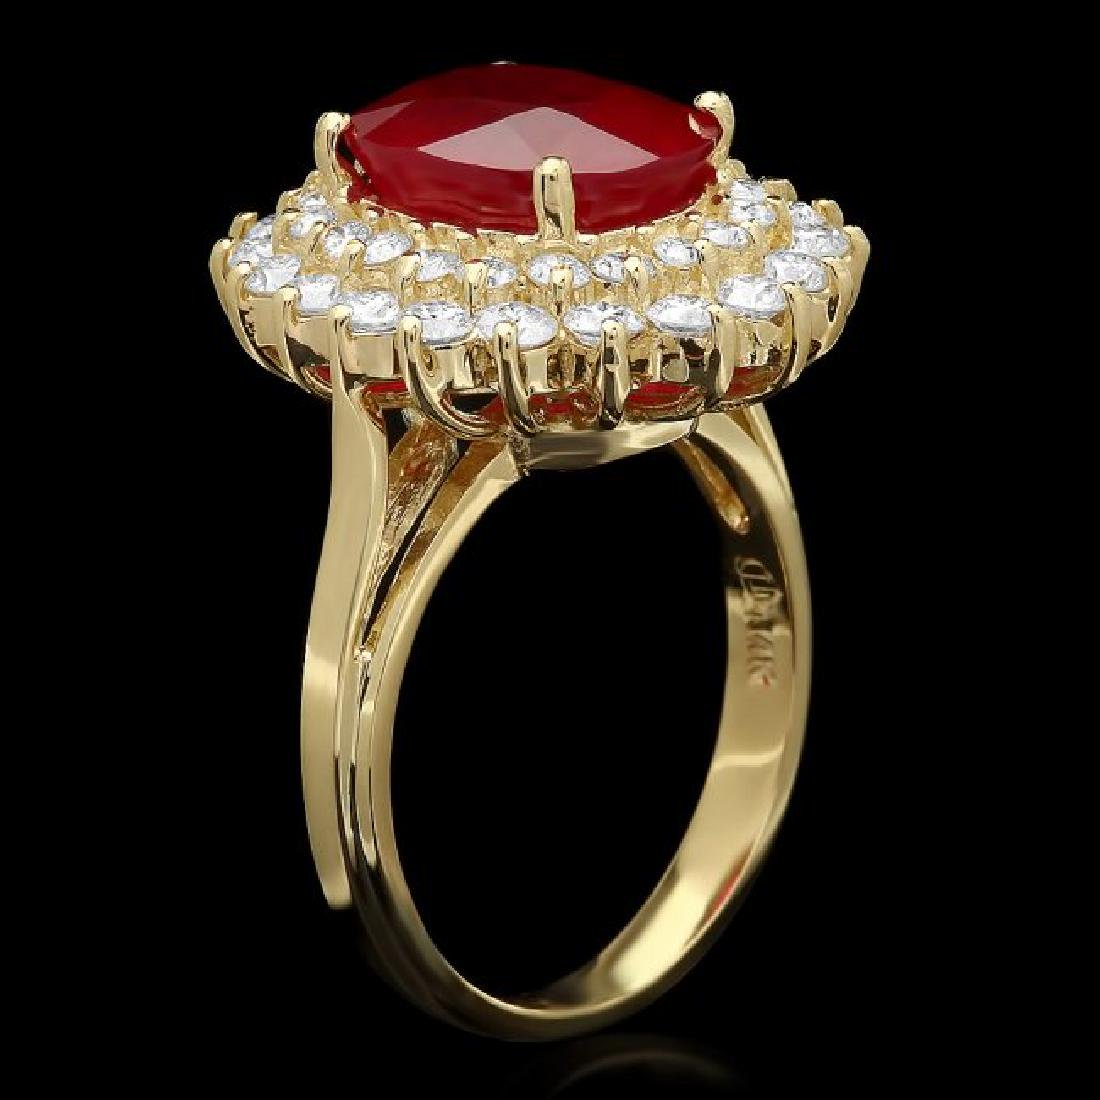 14k Yellow Gold 5.60ct Ruby 1.60ct Diamond Ring - 2